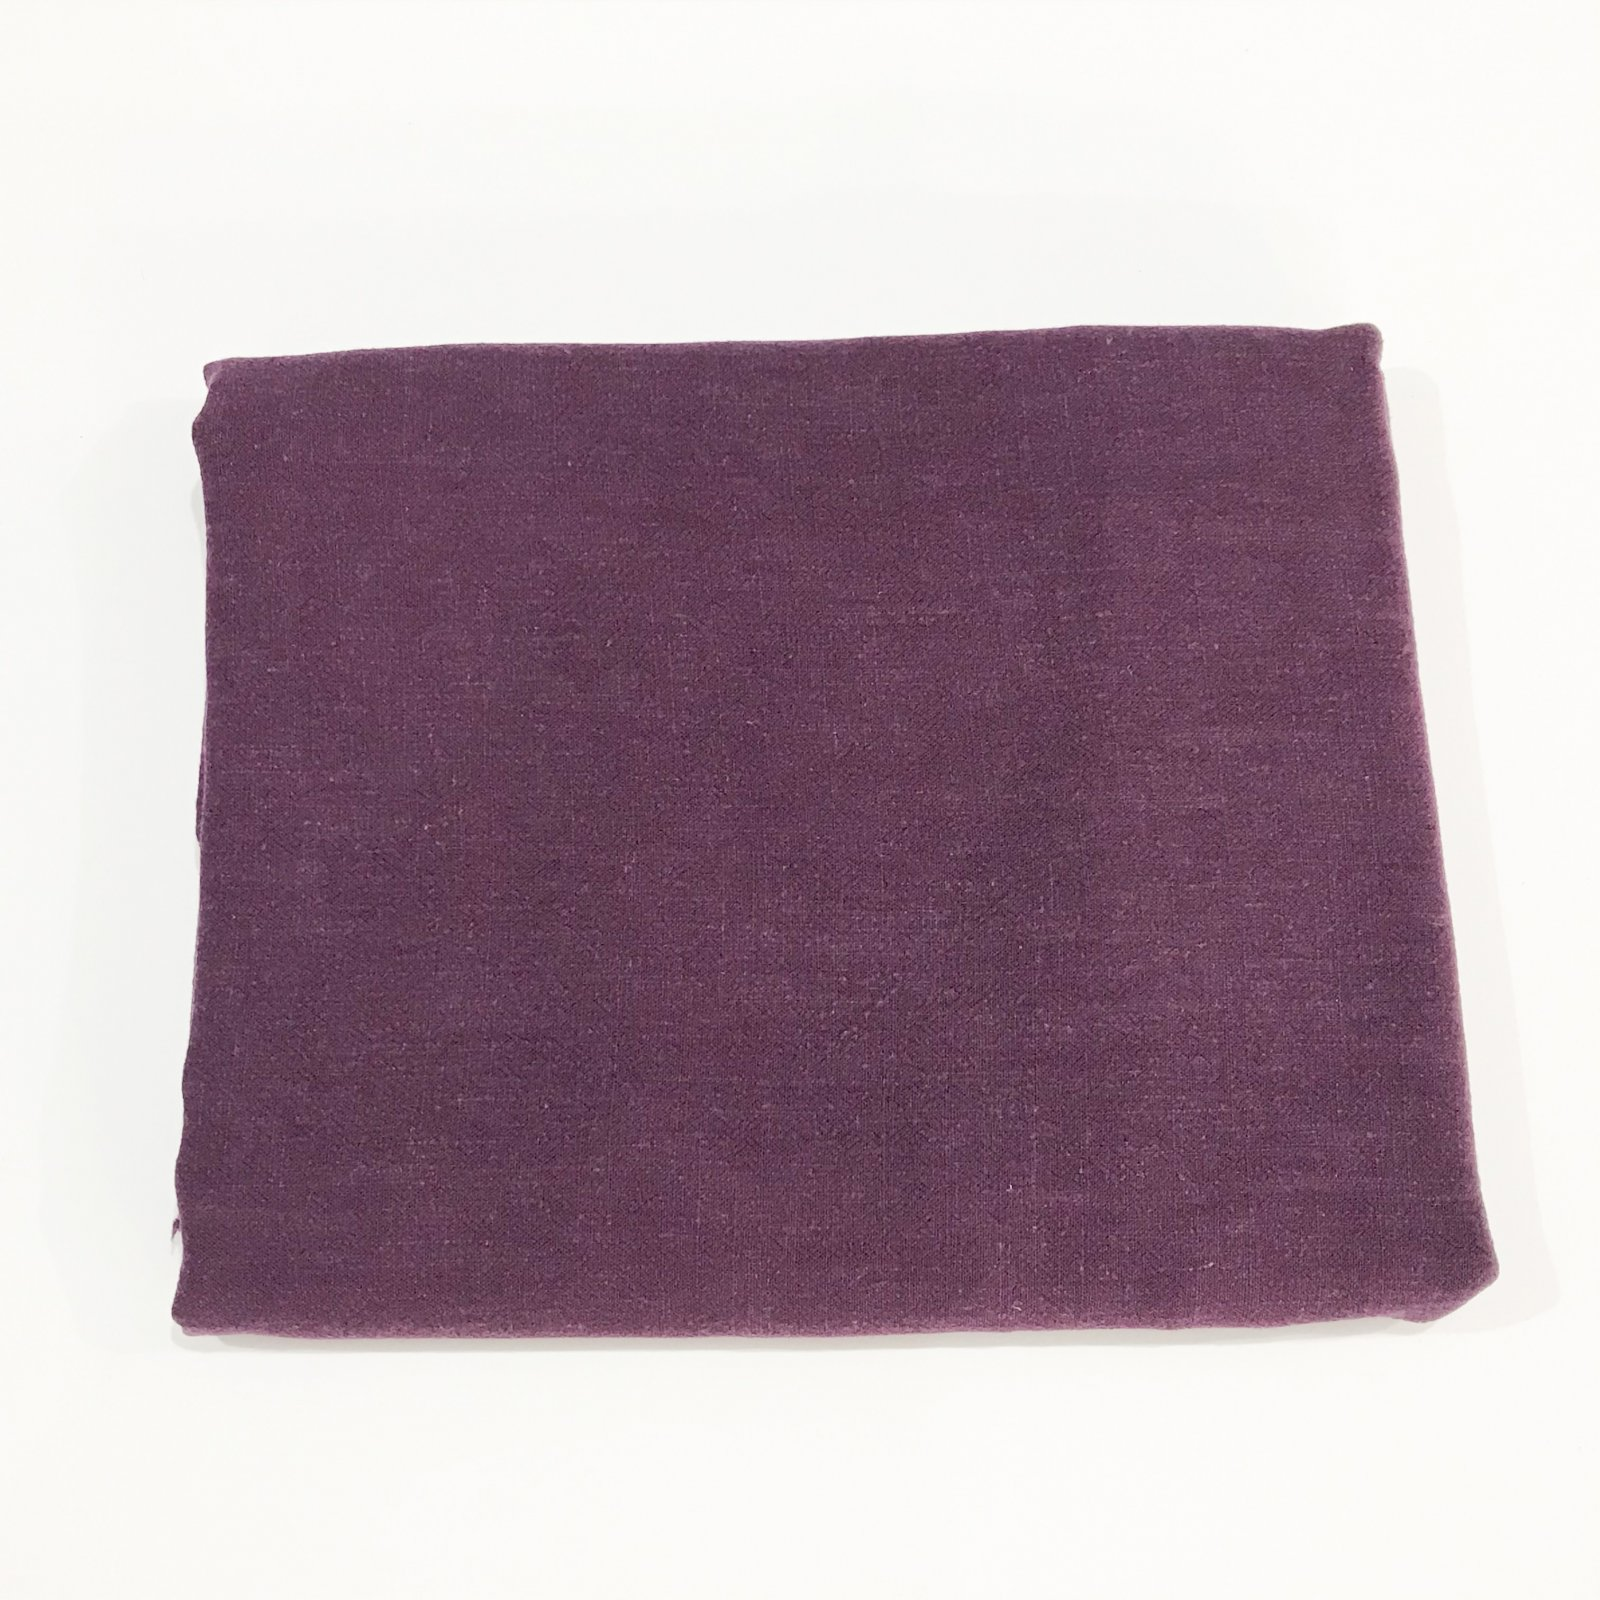 1 3/4 yard Grace Viscose & Linen Blend in Plum